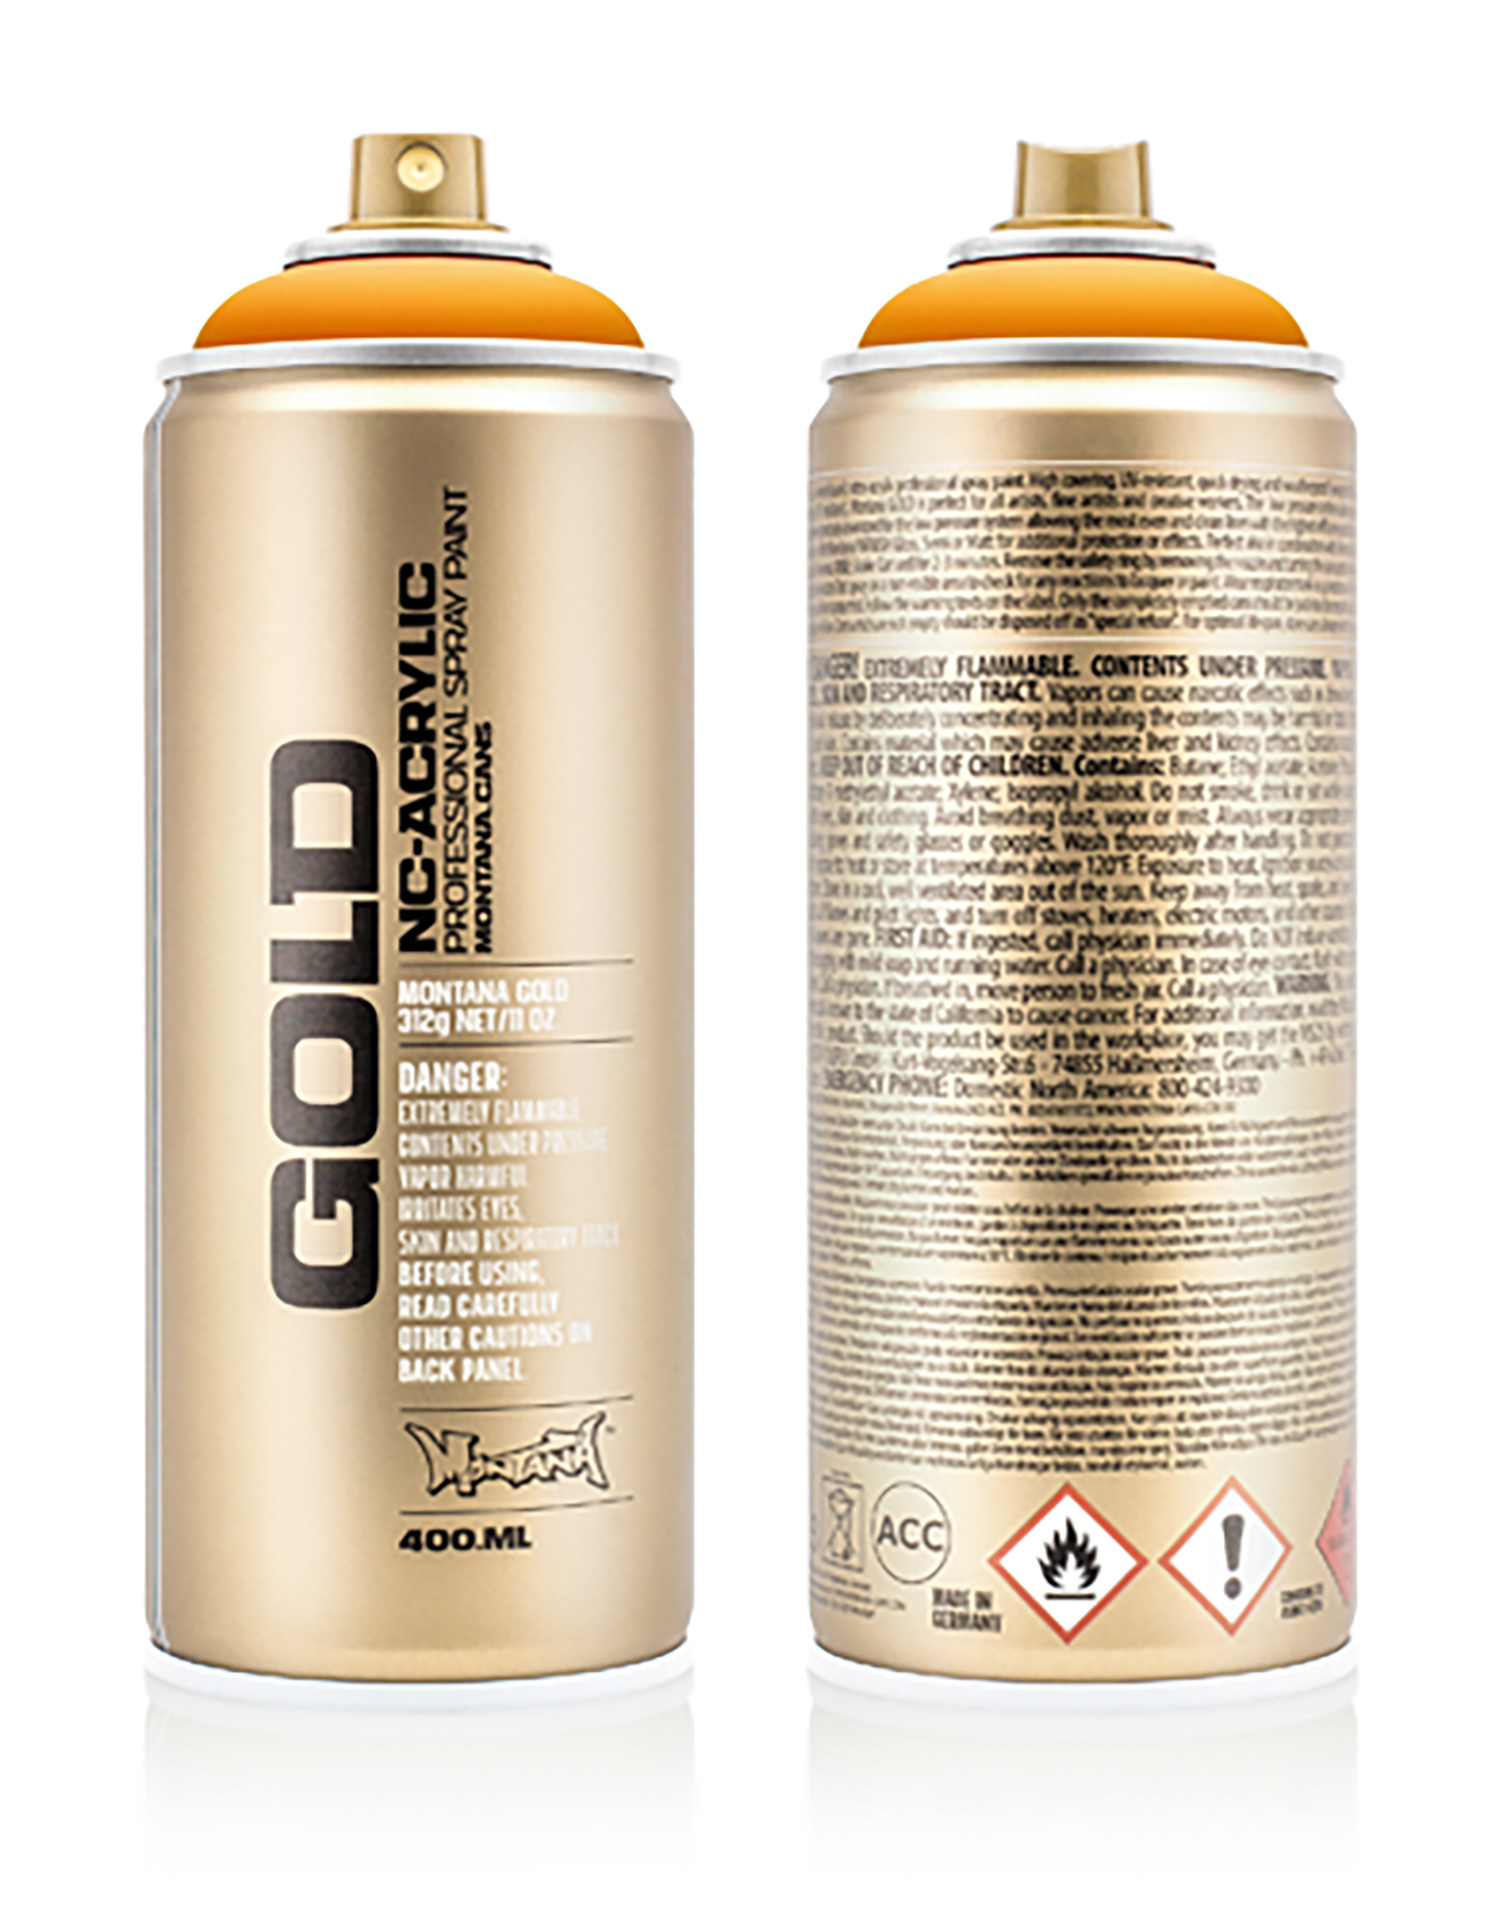 MONTANA-GOLD-SPRAY-400ML-G-1240